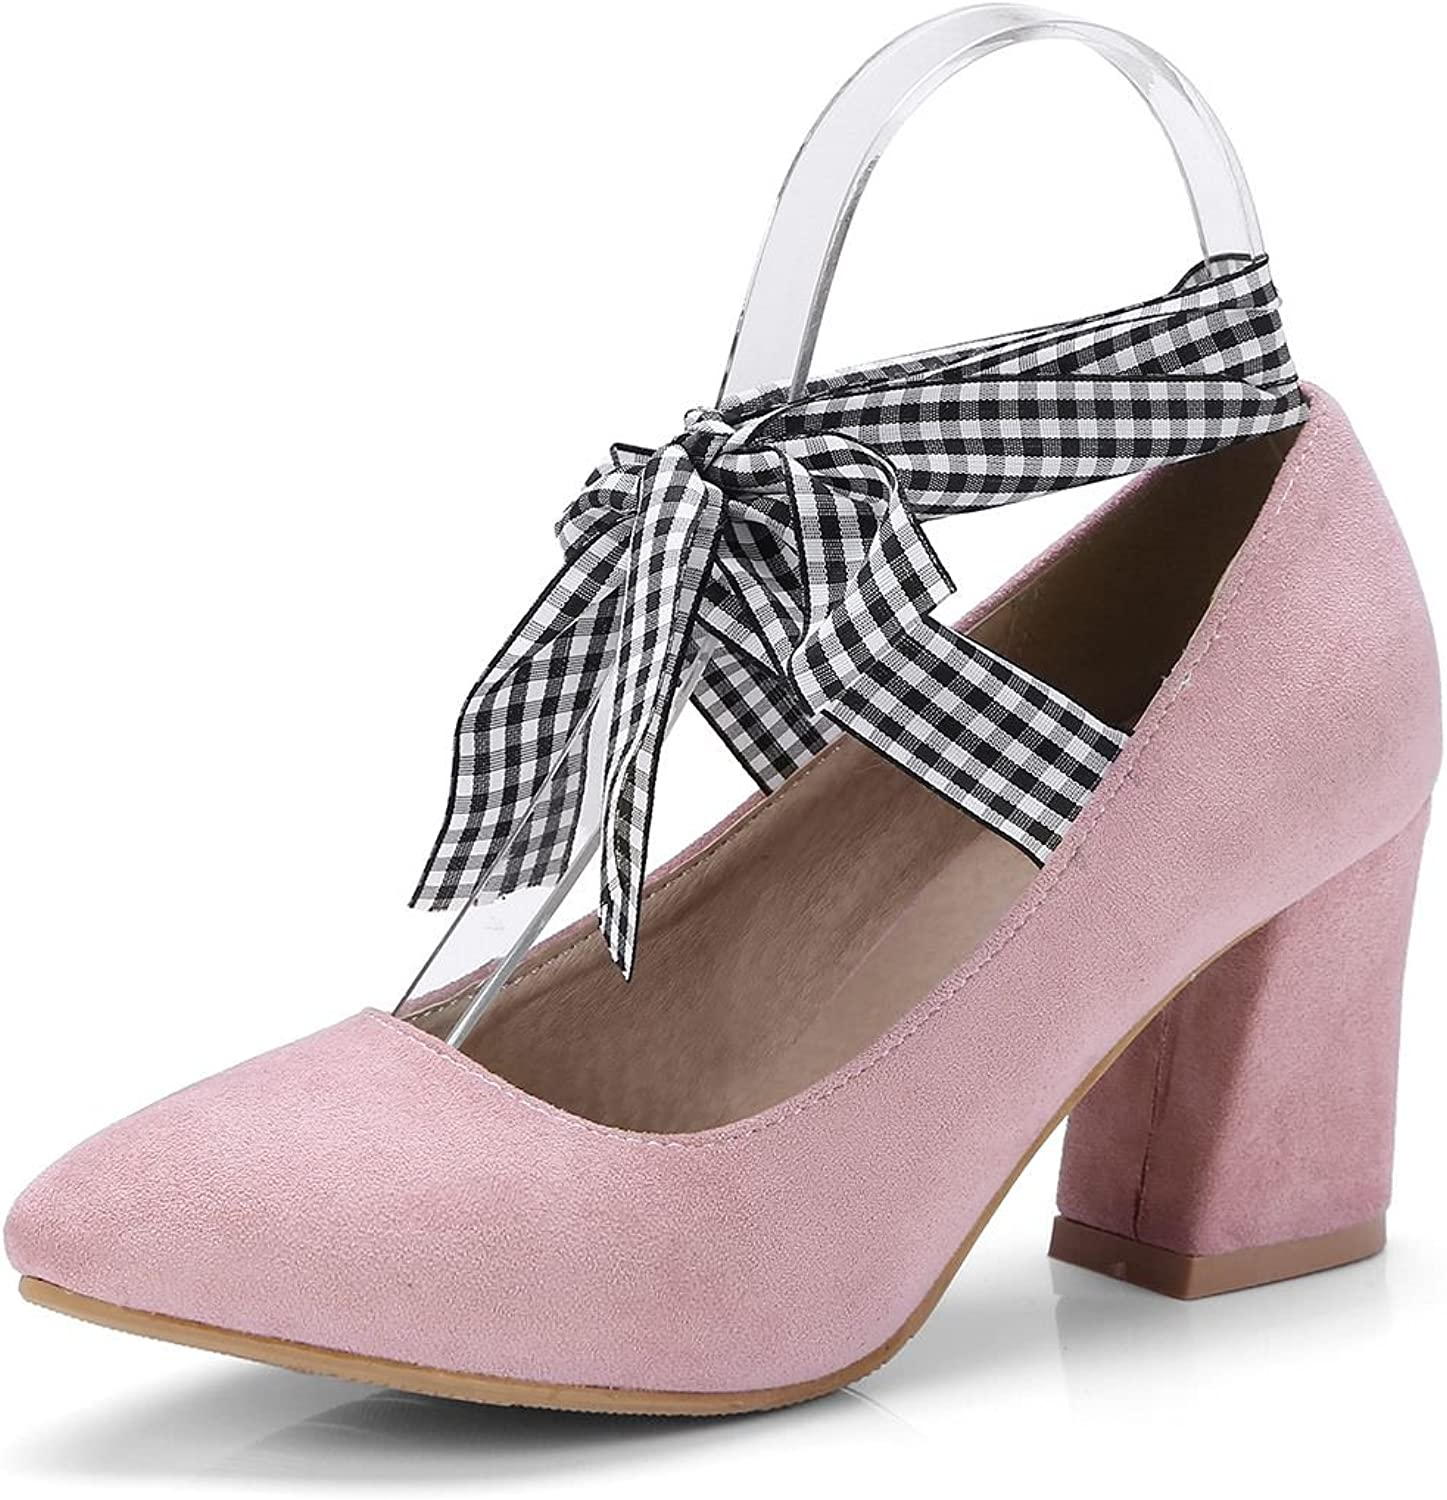 DecoStain Women's Pointed Toe Bowtie Lace Up Mid Chunky Heel Pumps Work Party shoes